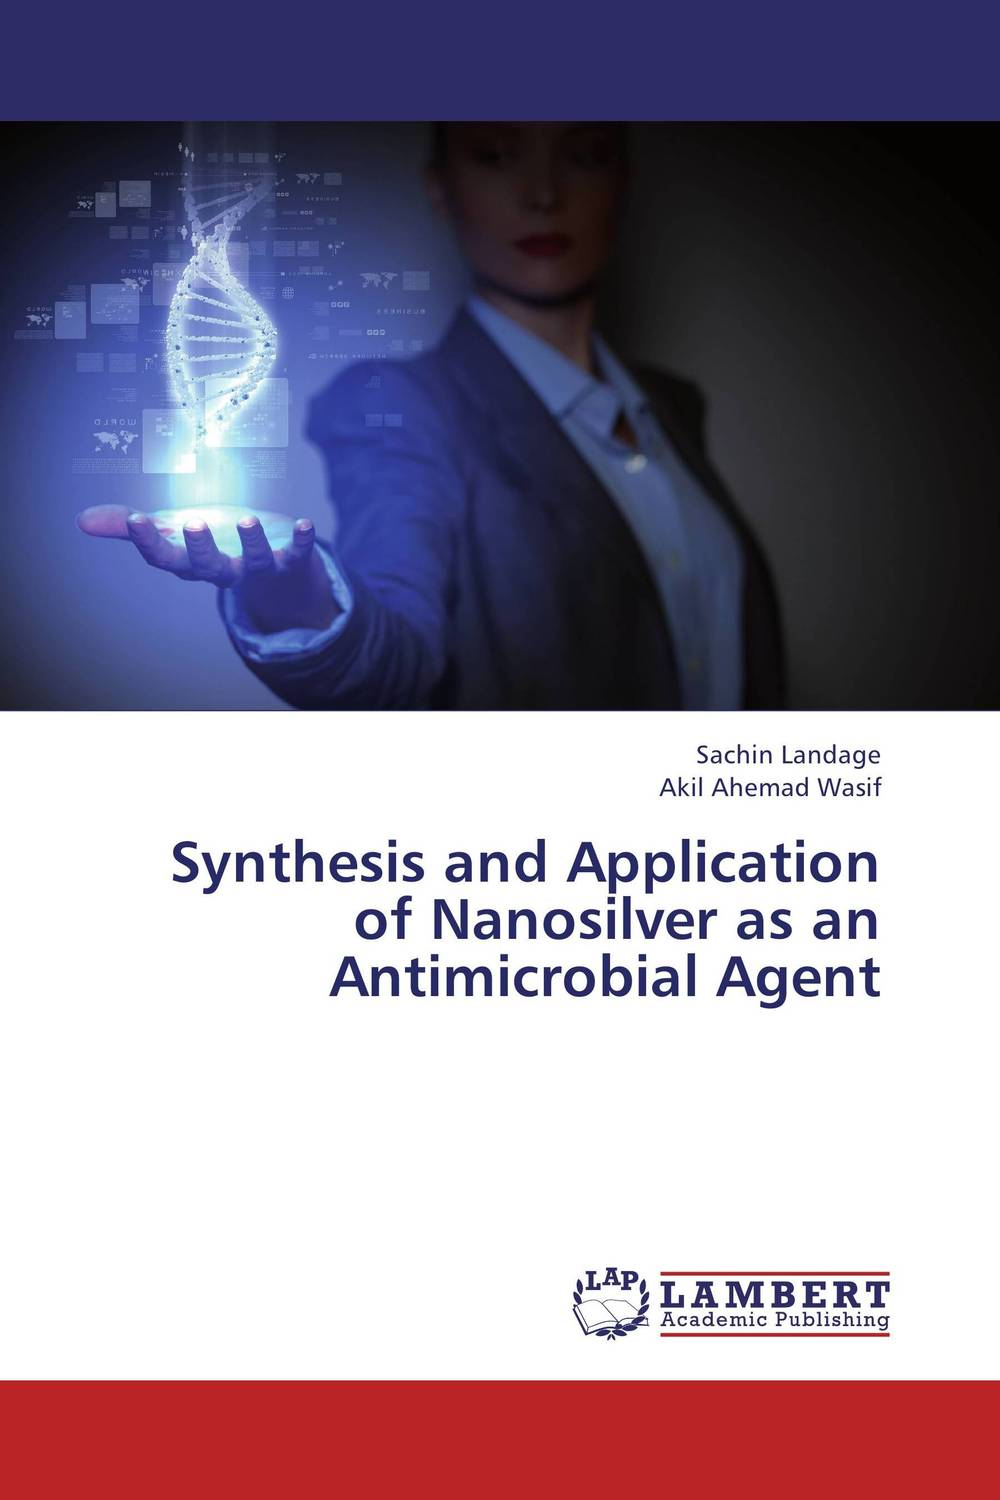 Synthesis and Application of Nanosilver as an Antimicrobial Agent manish solanki synthesis and antimicrobial actvity of 1 4 dihydropyridines